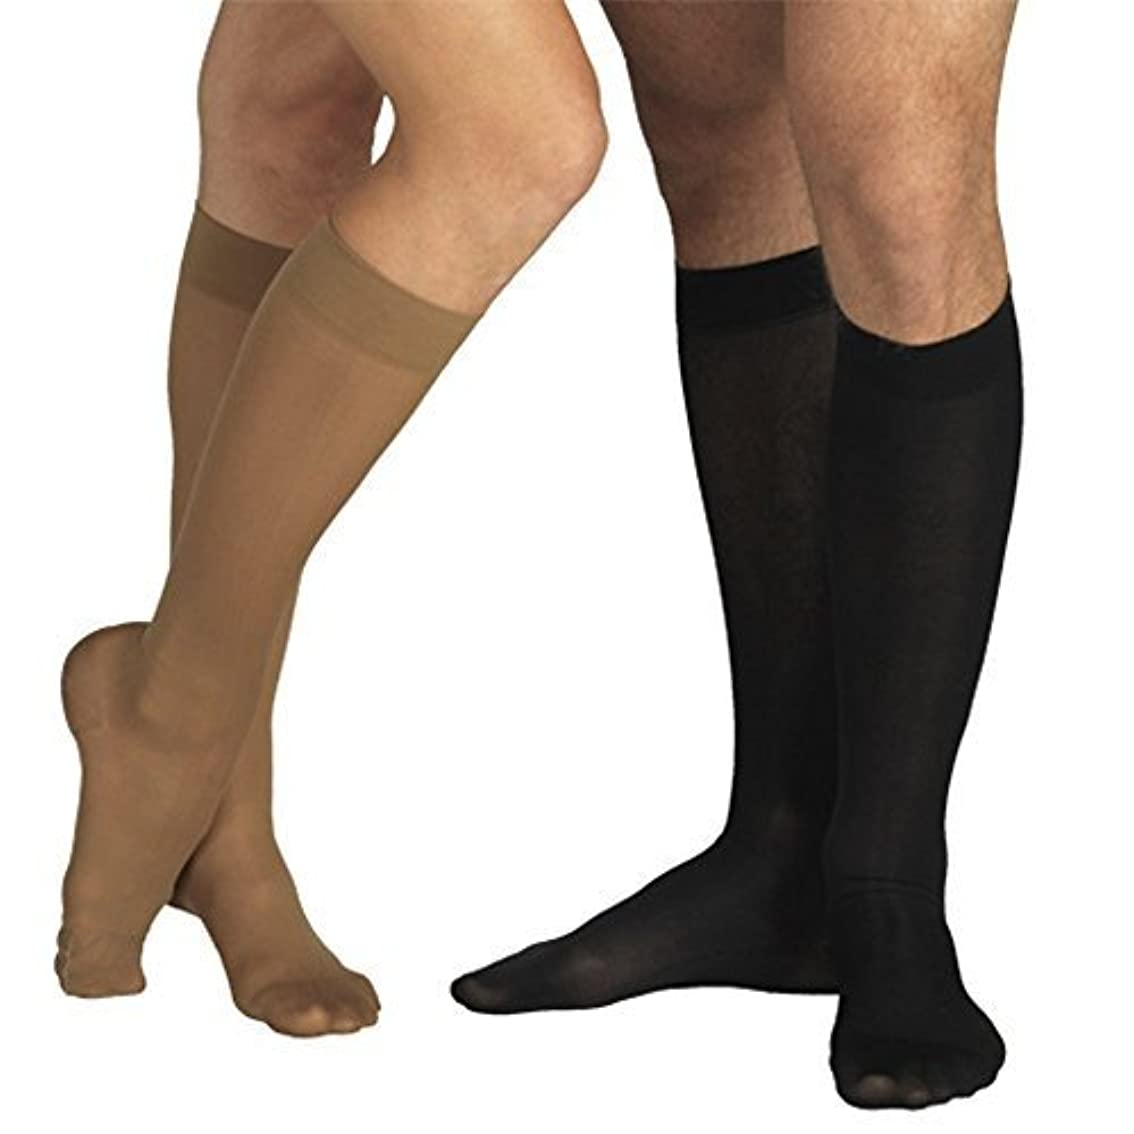 半島有力者写真を描く18-21 mmHg MEDICAL Compression Socks with CLOSED Toe, MODERATE Grade Class I, Knee High Support Stockings with...